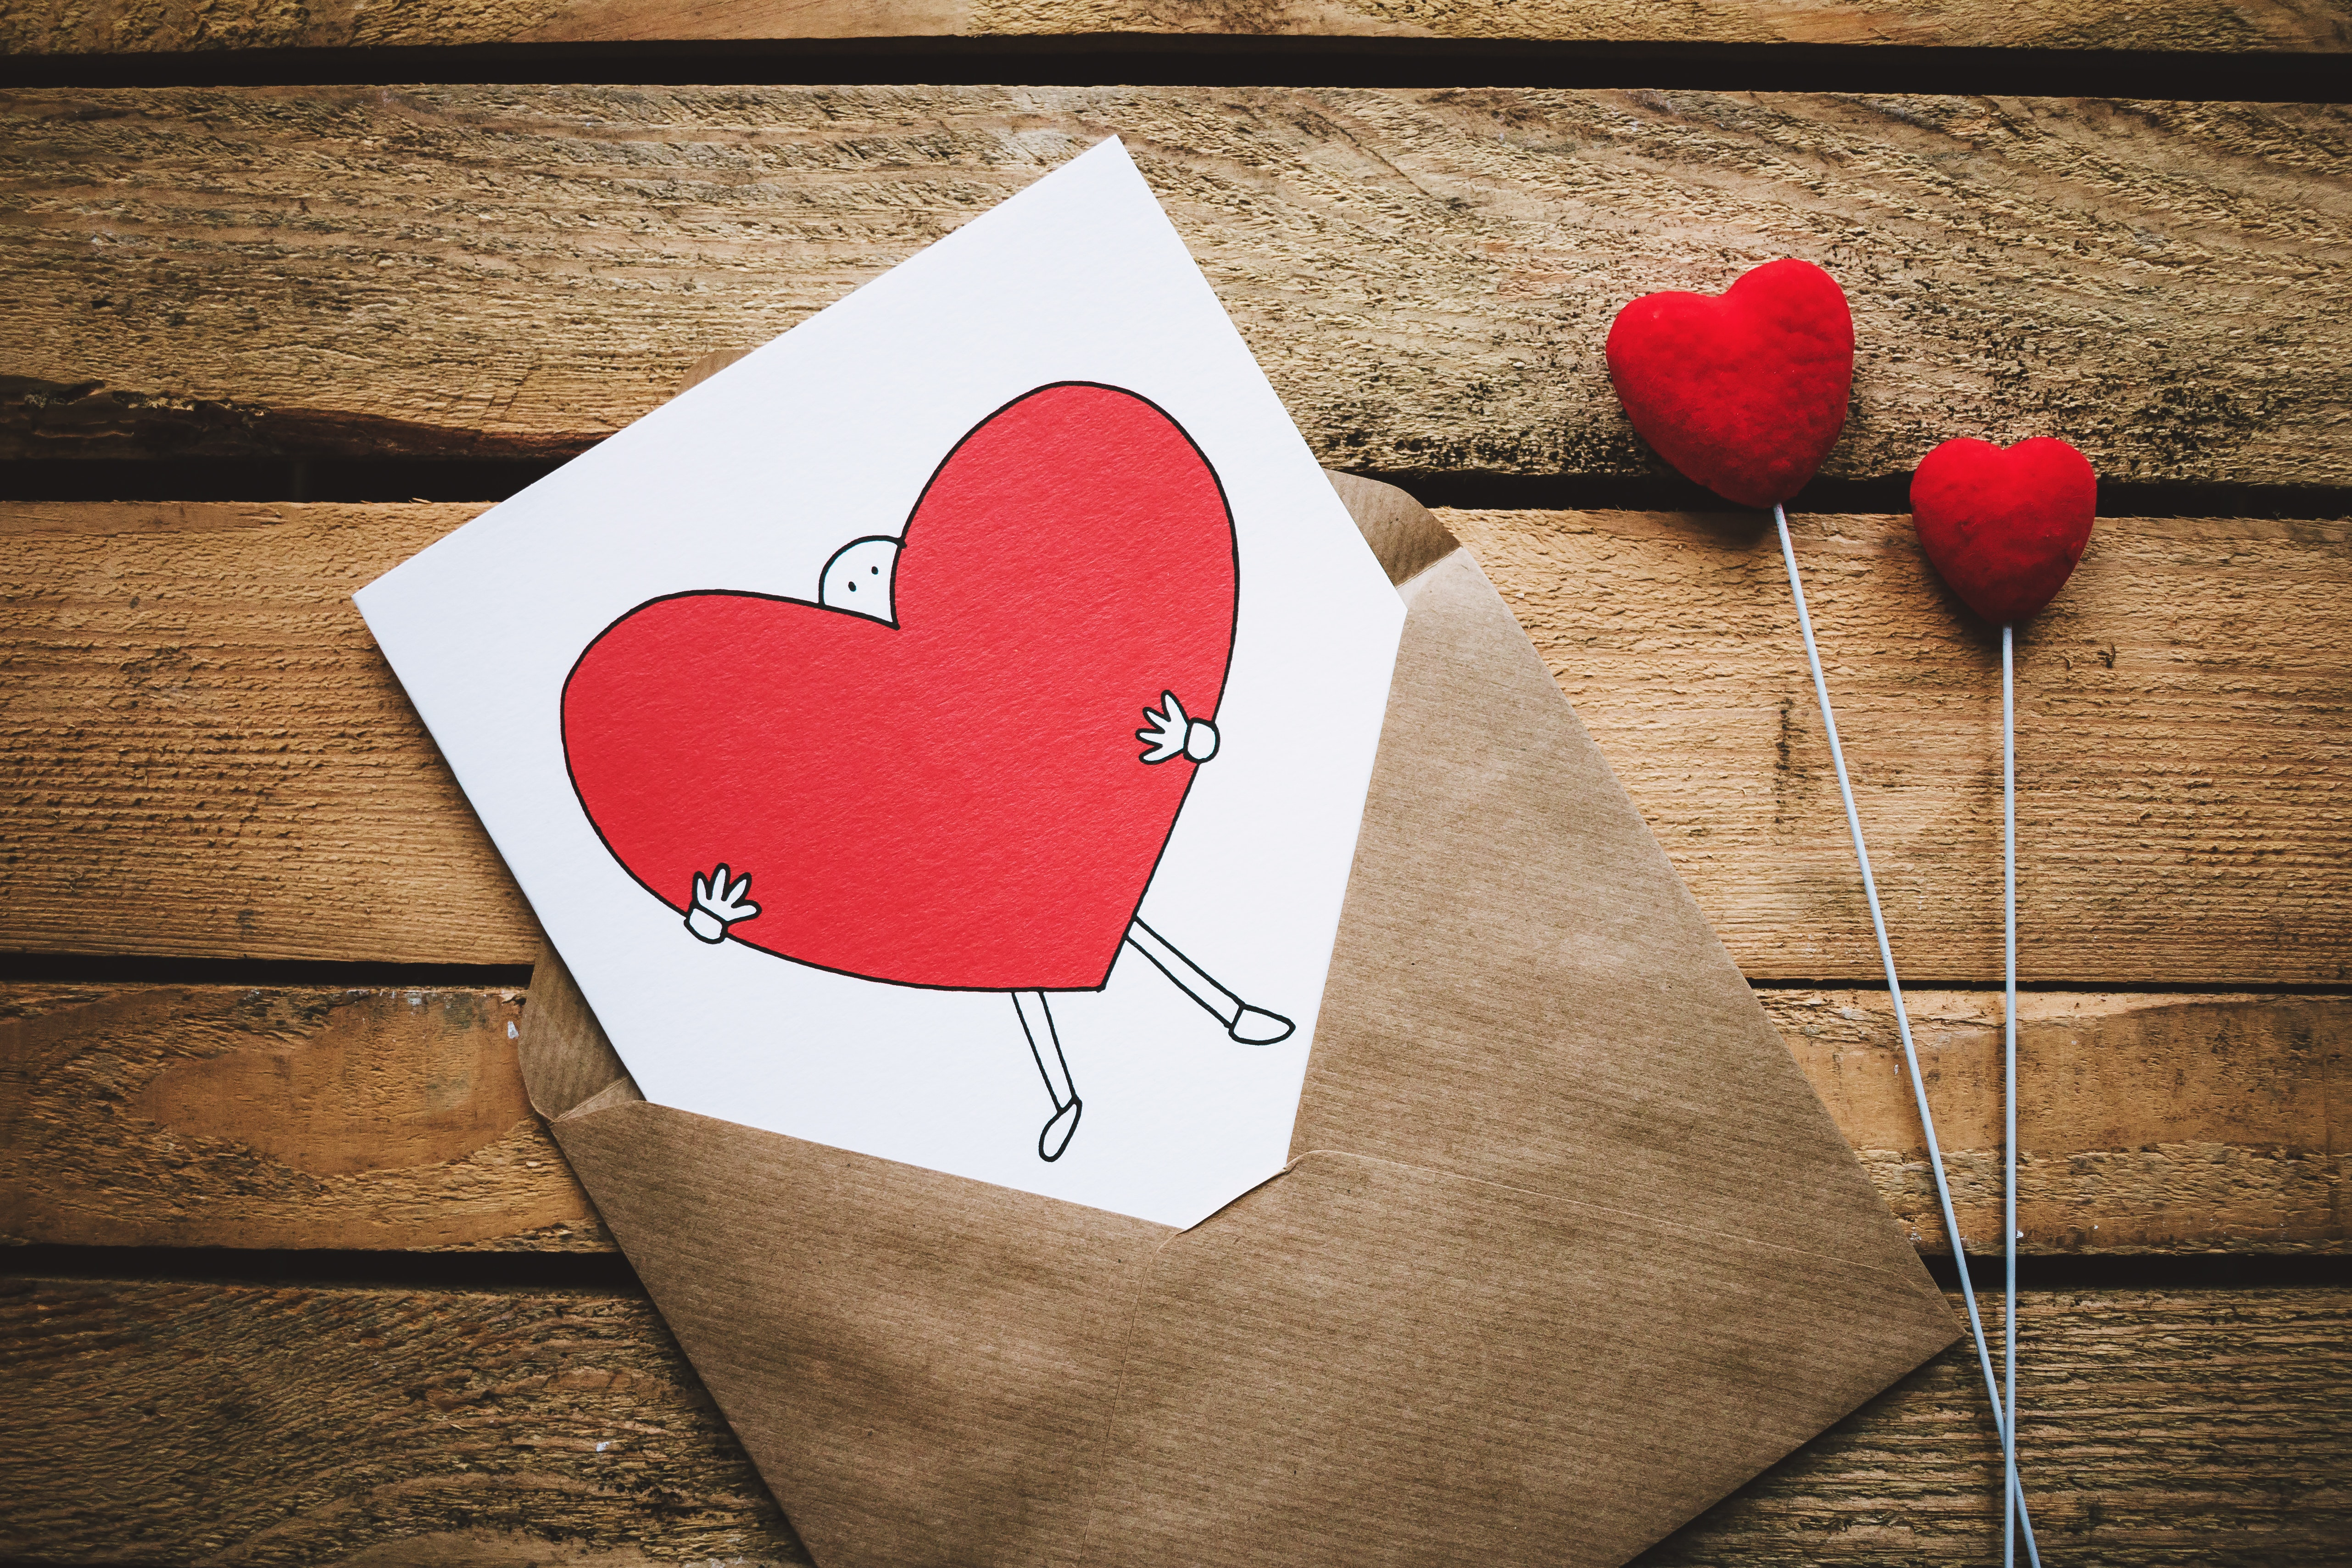 White, black, and red person carrying heart illustration in brown envelope photo